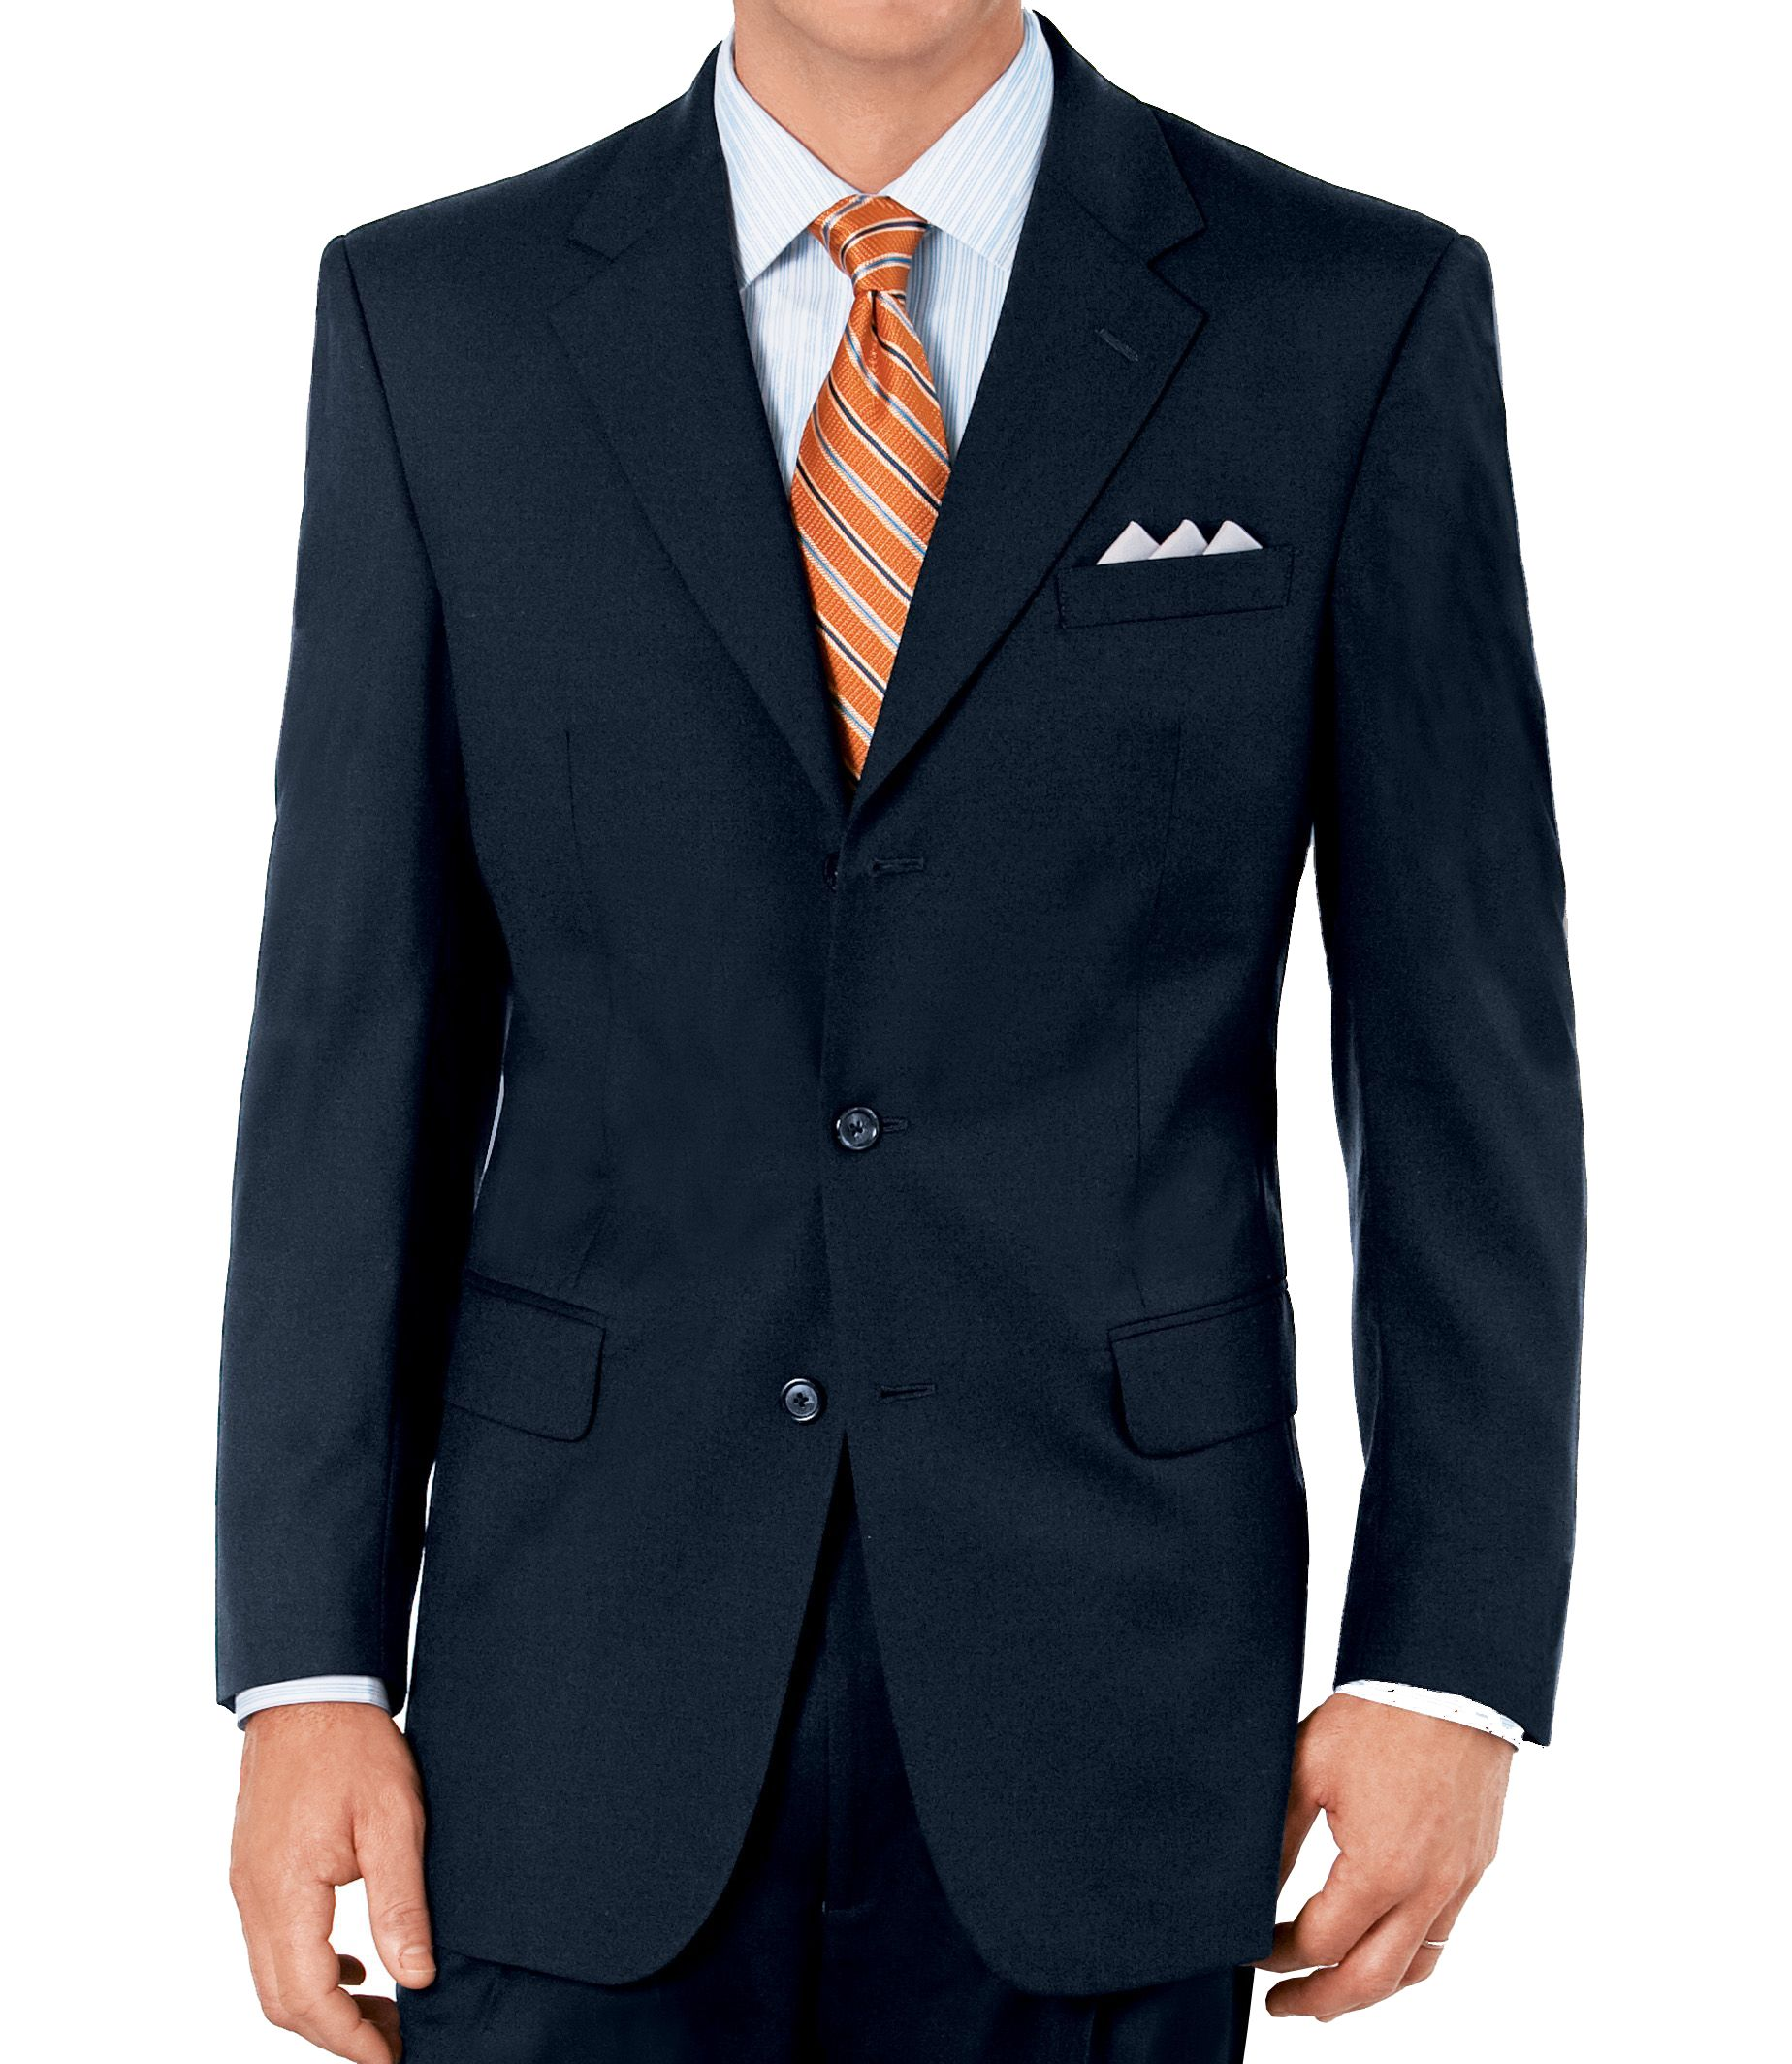 Executive 2-Button Wool Suit with Pleated Front Trousers- Sizes 44 X-Long-52 - Charcoal Fancy Plain, Navy, Olive Fancy Plain